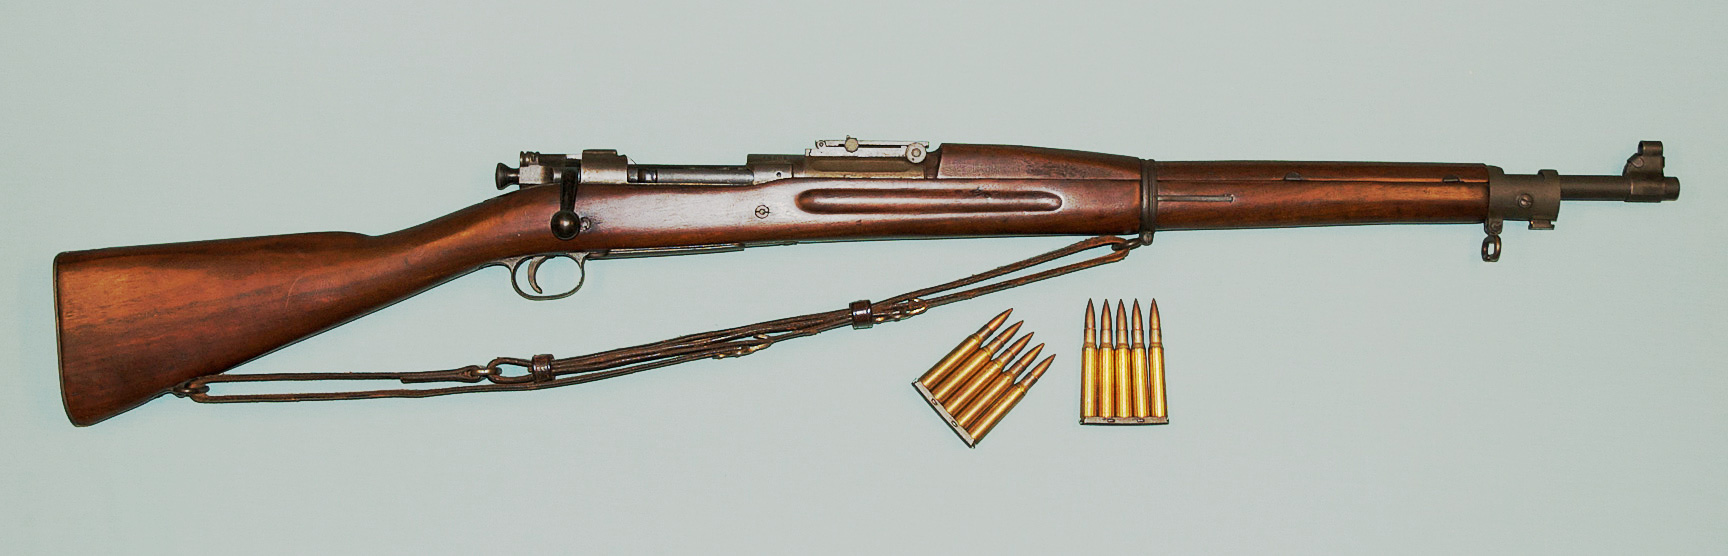 M1903 Springfield rifle.